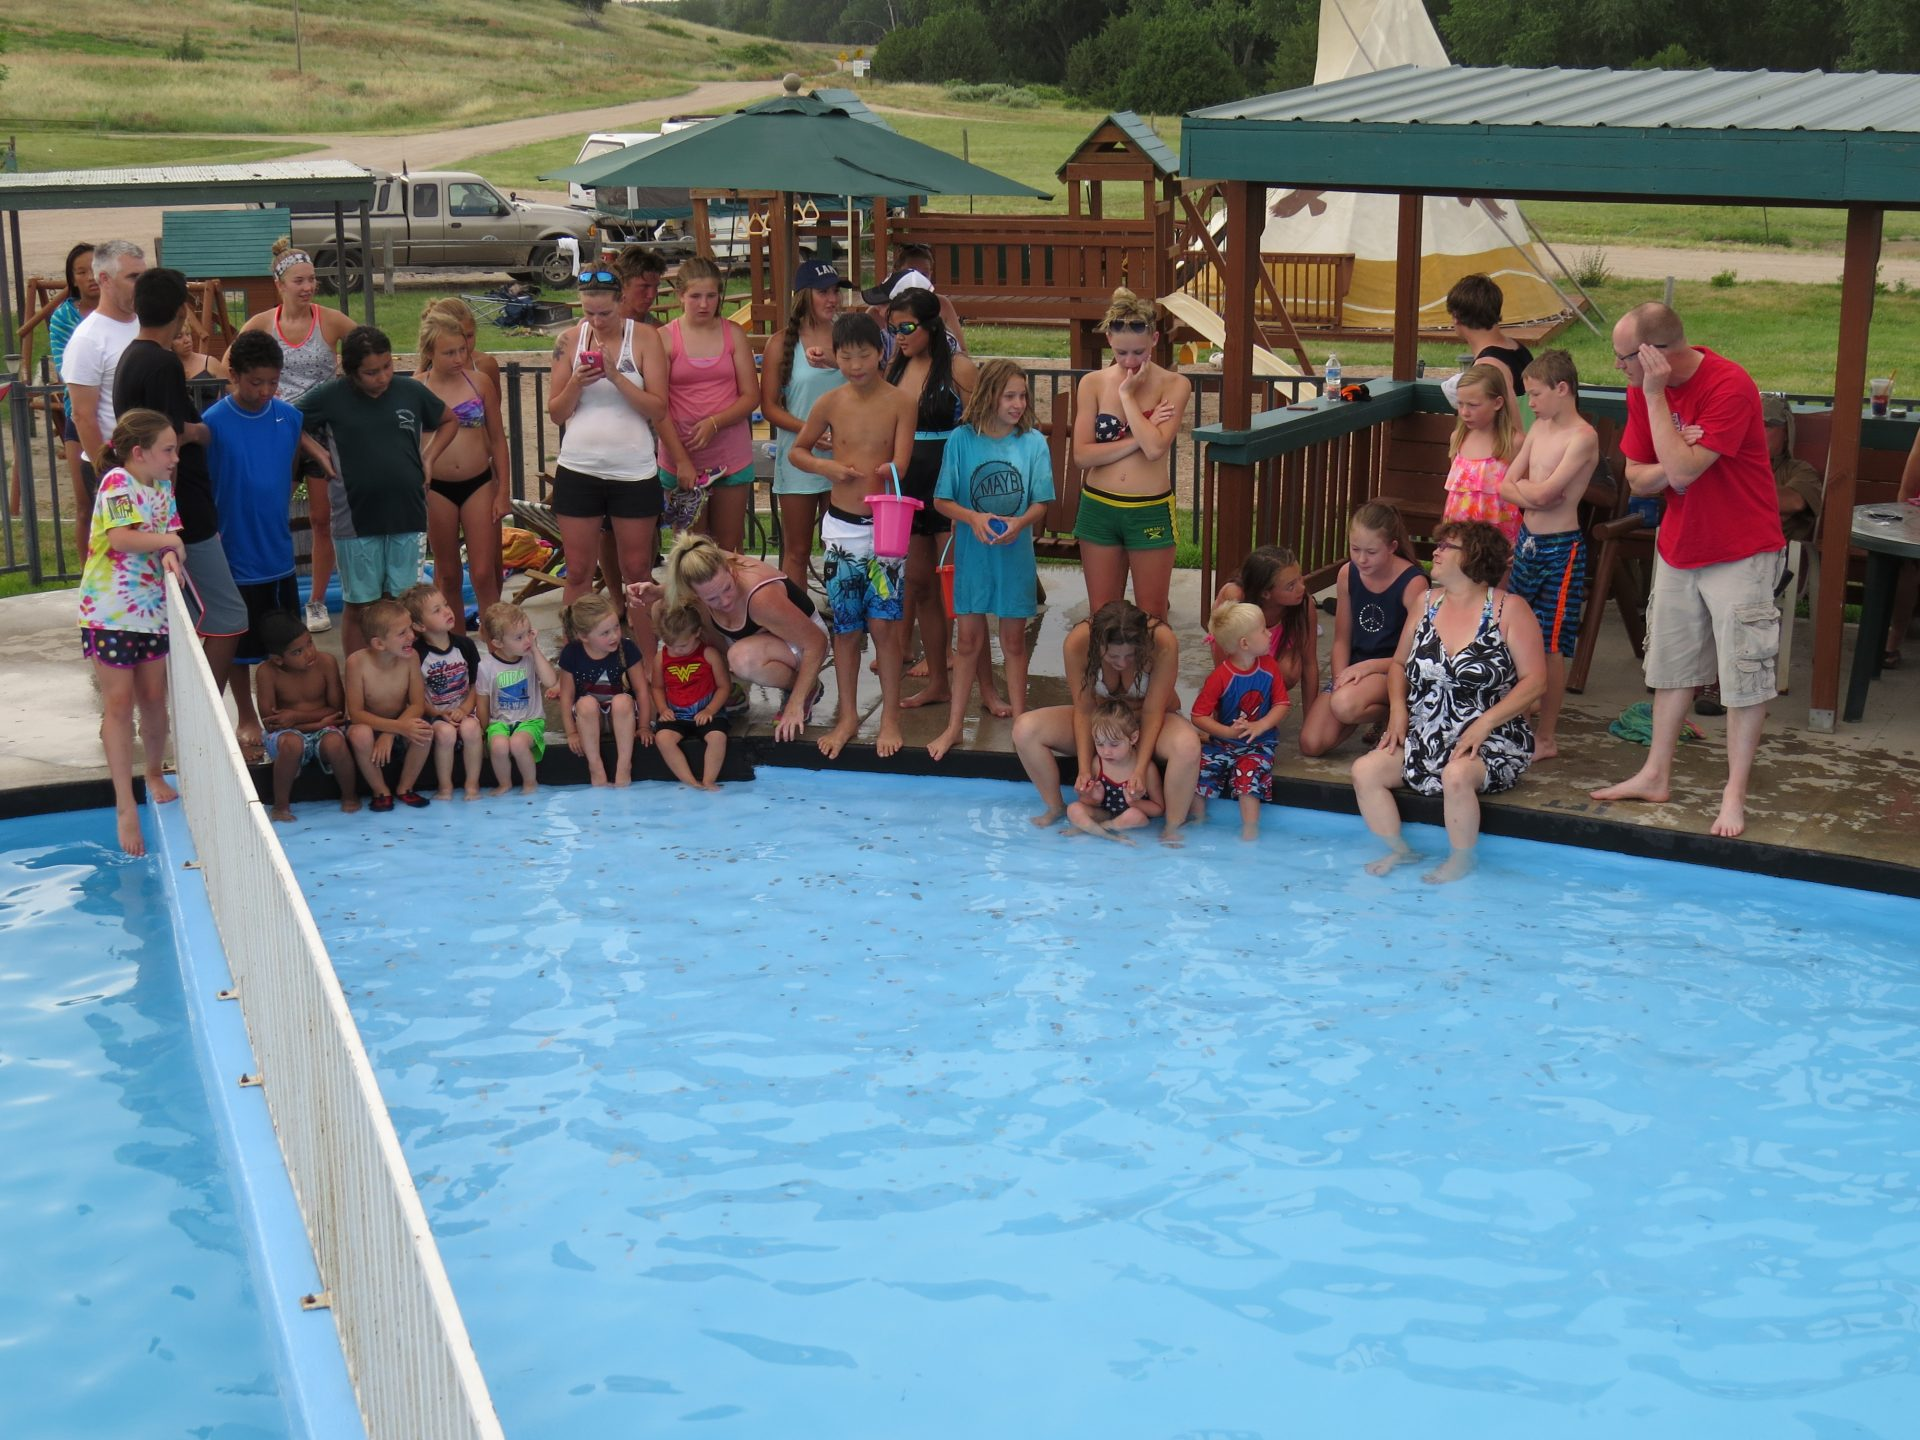 07-04-2015 ECH coin scramble in the pool 012